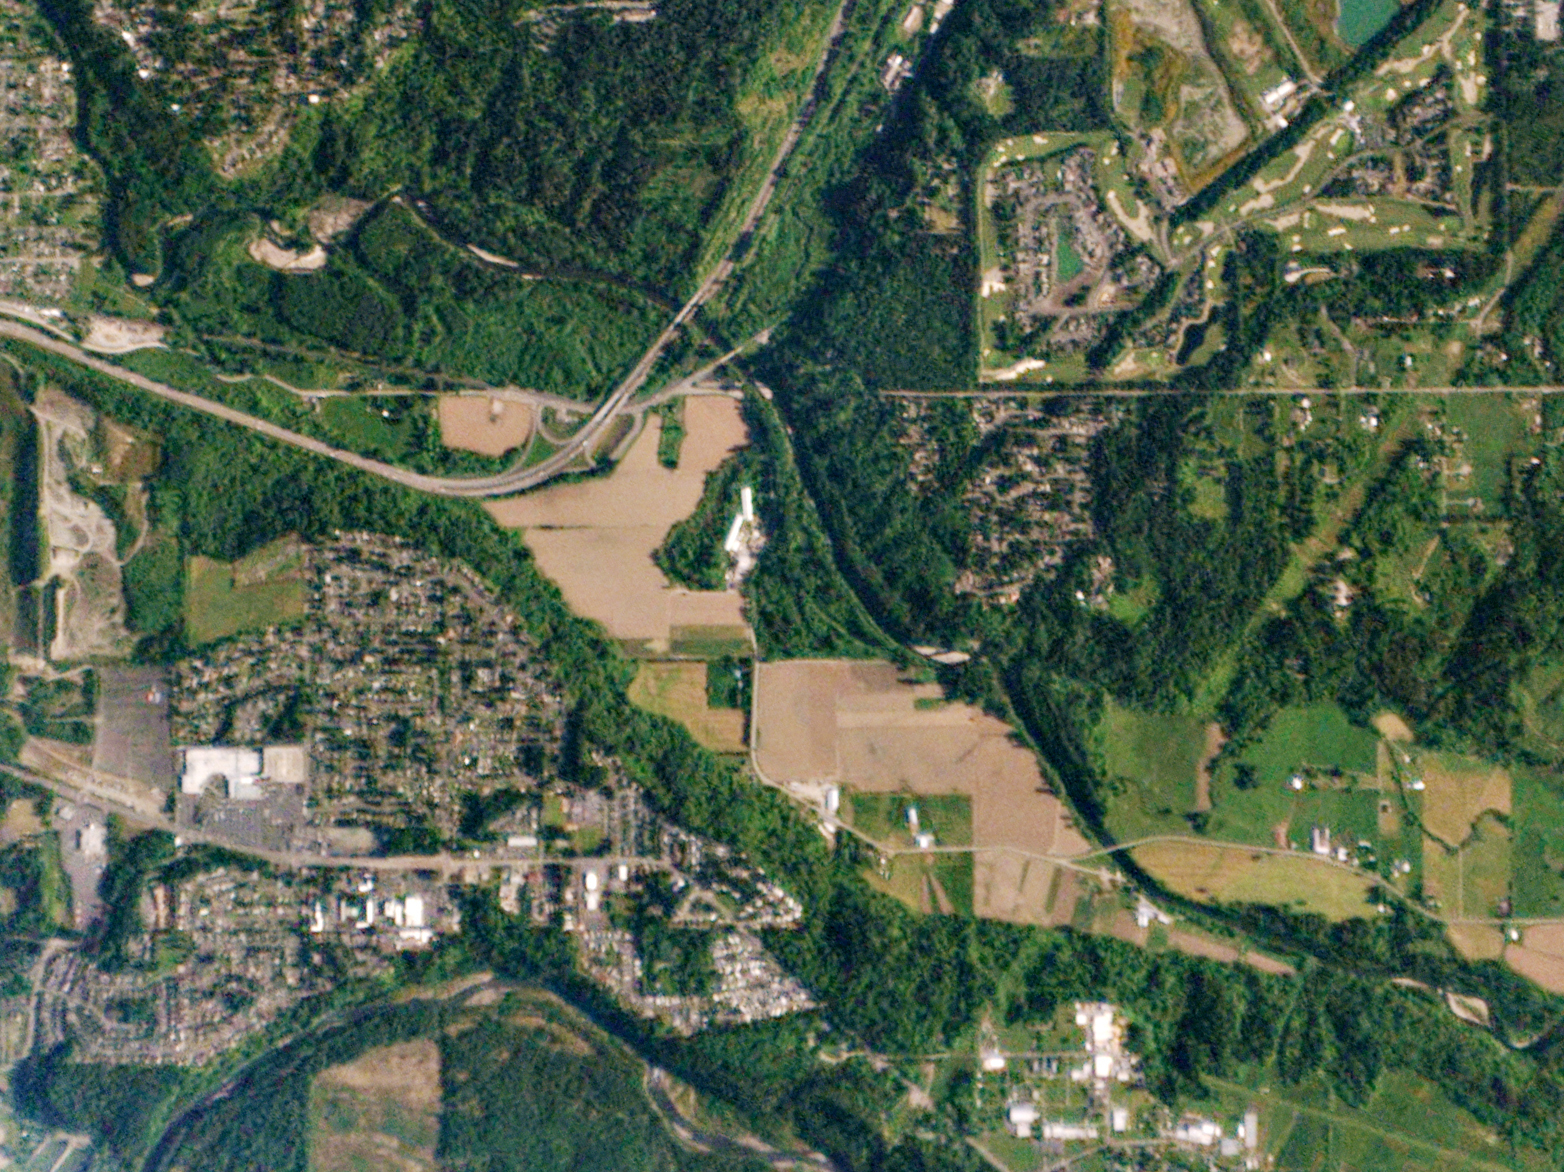 Auburn, Wash., is suburb of Seattle about 29 miles from the city center. This 6.3-square-mile view was photographed on May 18, 2015. The researchers say the city of Seattle could source 100 percent of its food from within a 100-mile radius.